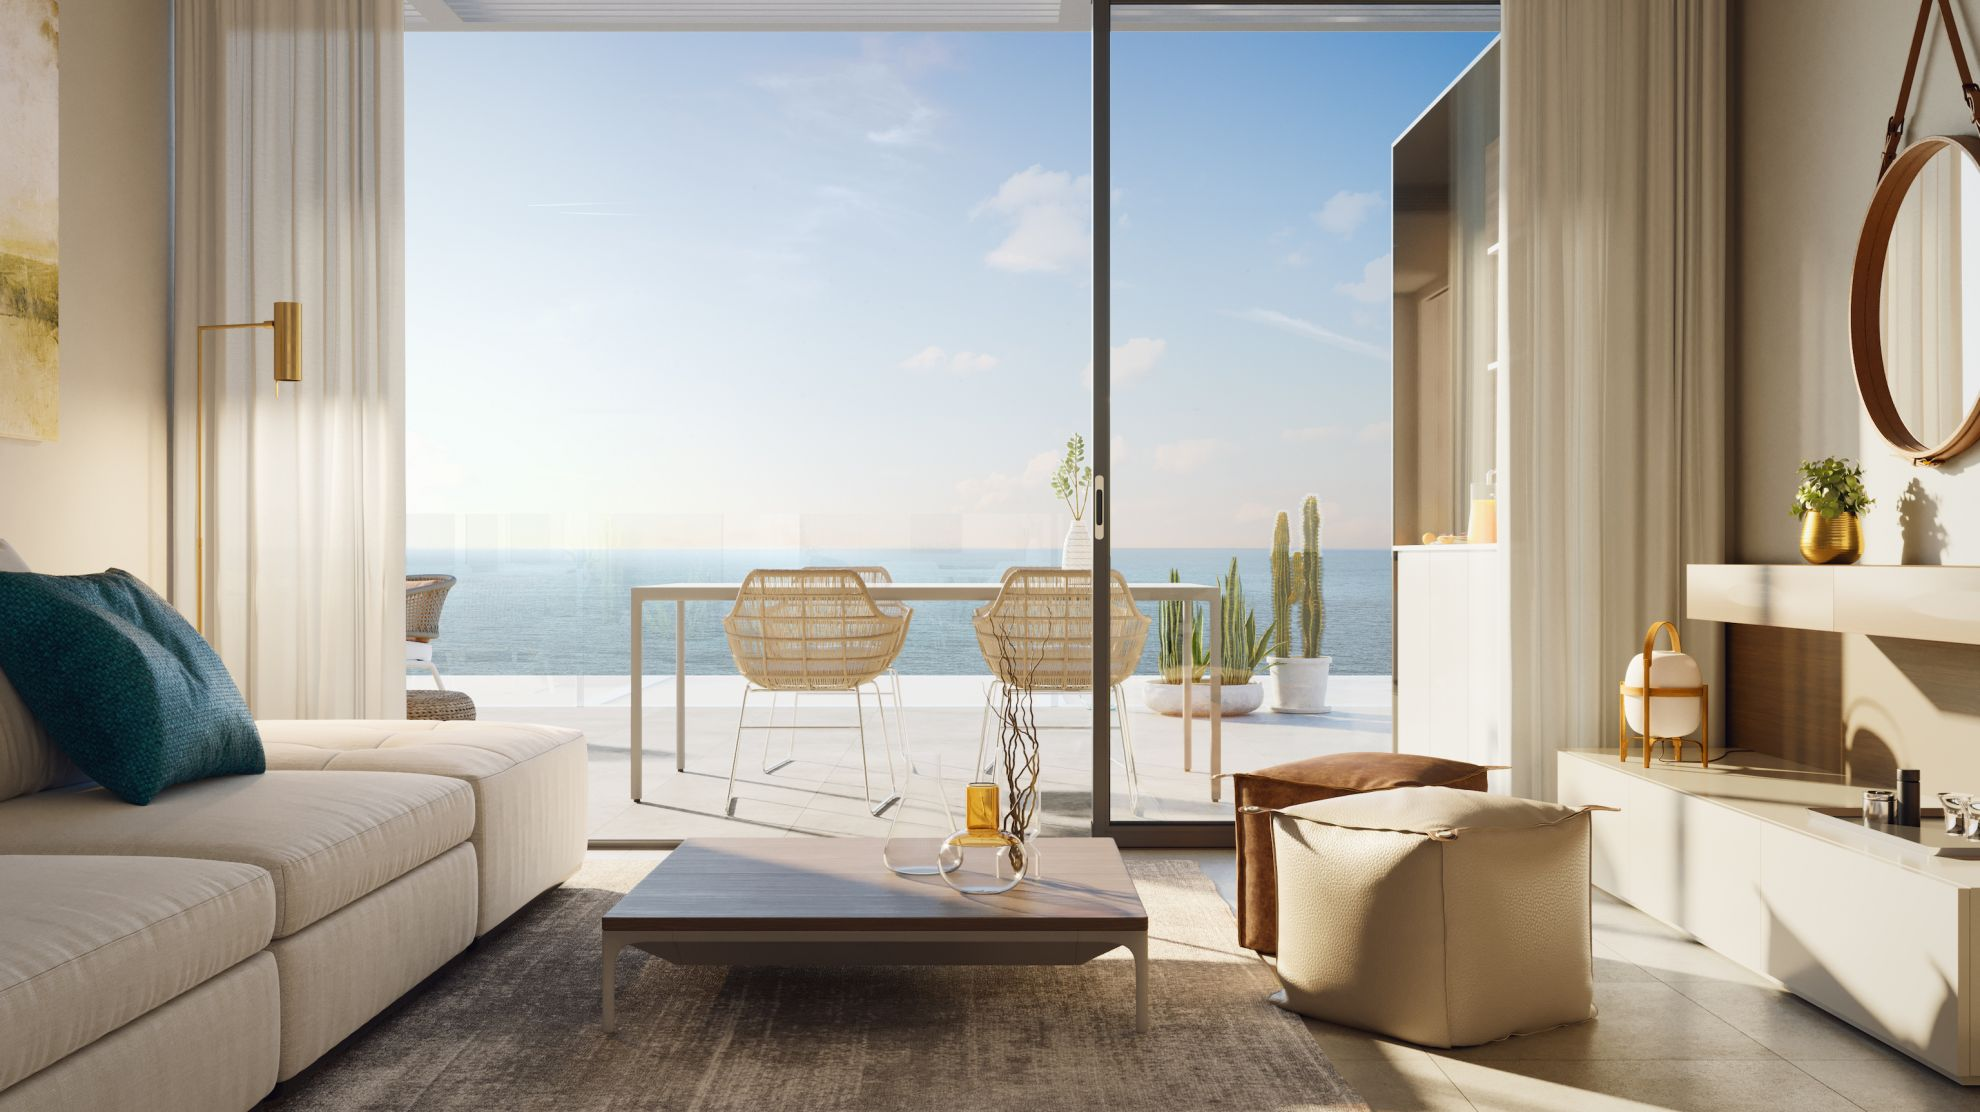 2 and 3 bedroom penthouse-style apartments with big terraces overlookg the sea. House 9 32